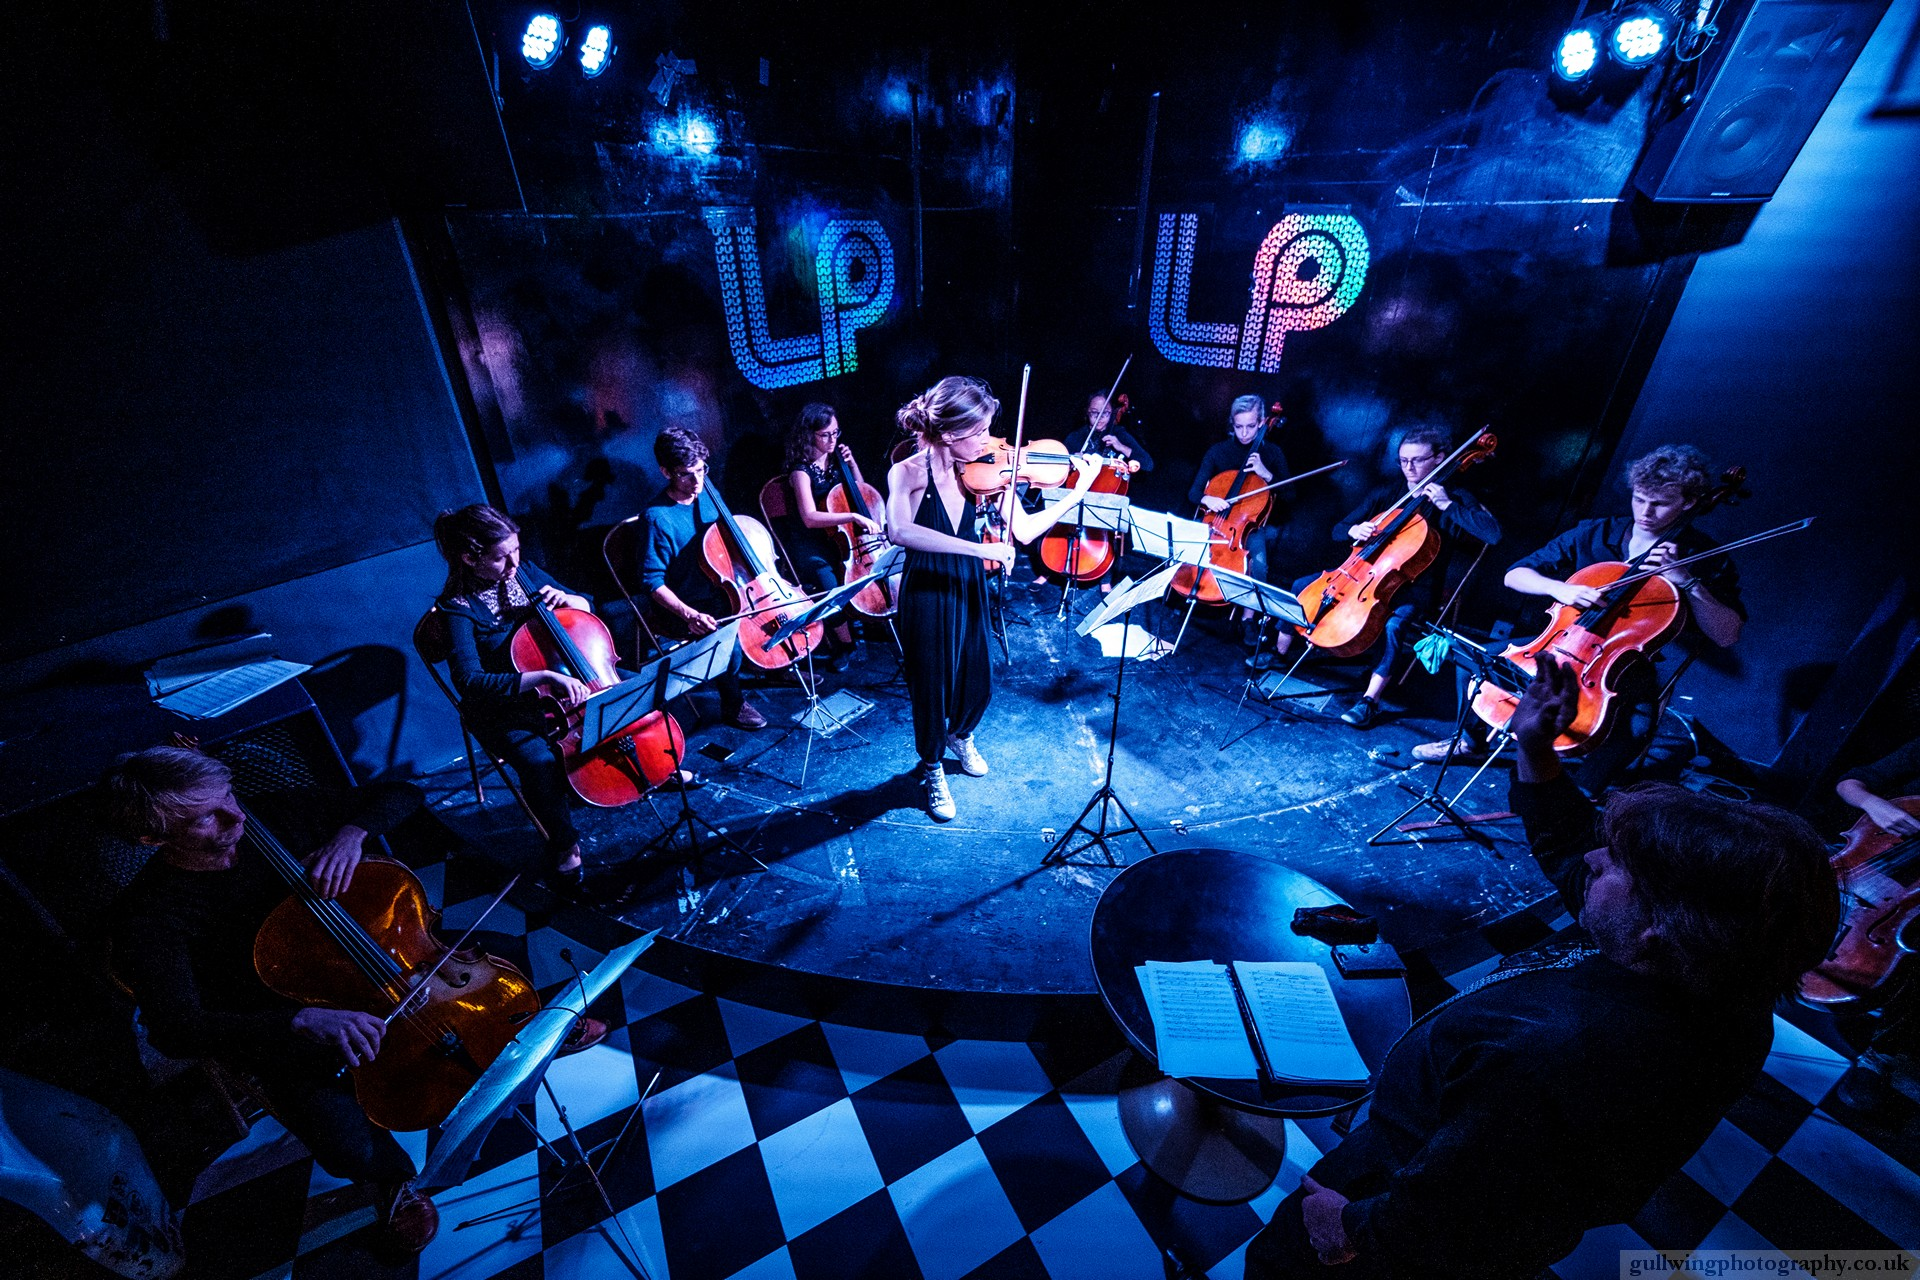 PHILIPPA MO @ THE CURTAIN, AN IMMERSIVE LIVE MUSIC EXPERIENCE